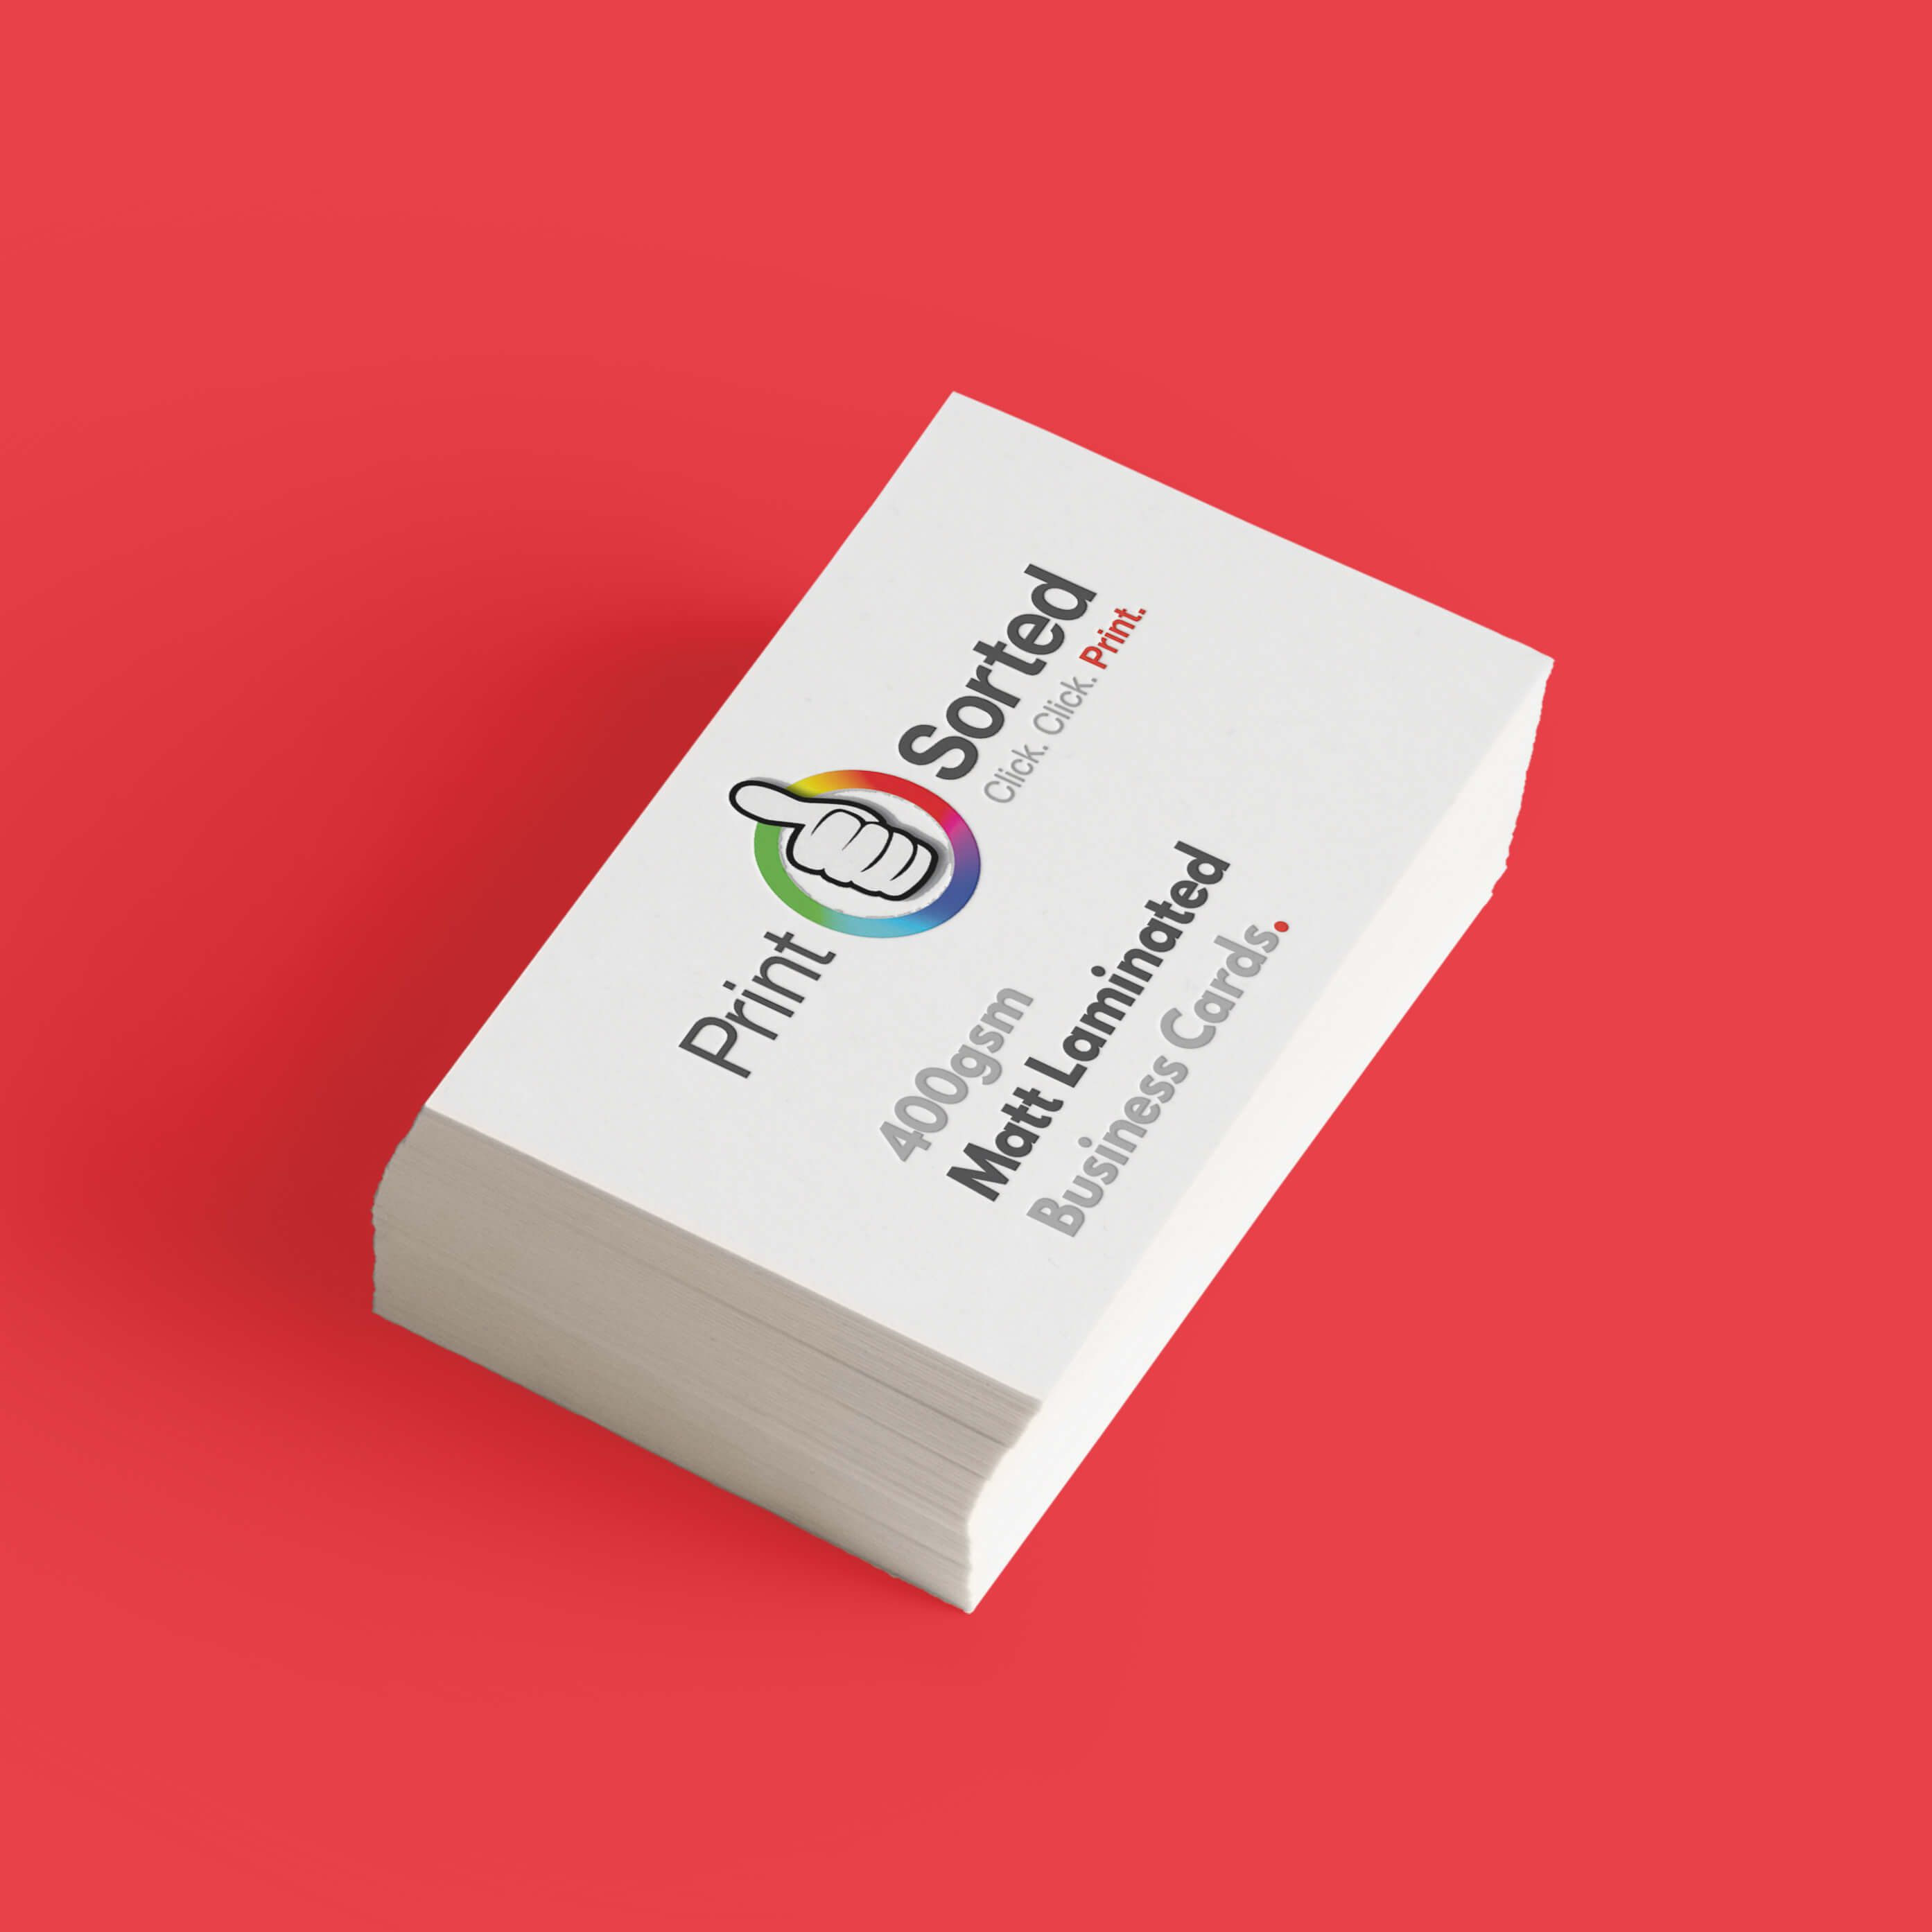 Top 5 Things You Need To Consider When Getting Your Business Card Printed Business Cards Uk Laminated Business Cards Cheap Business Cards